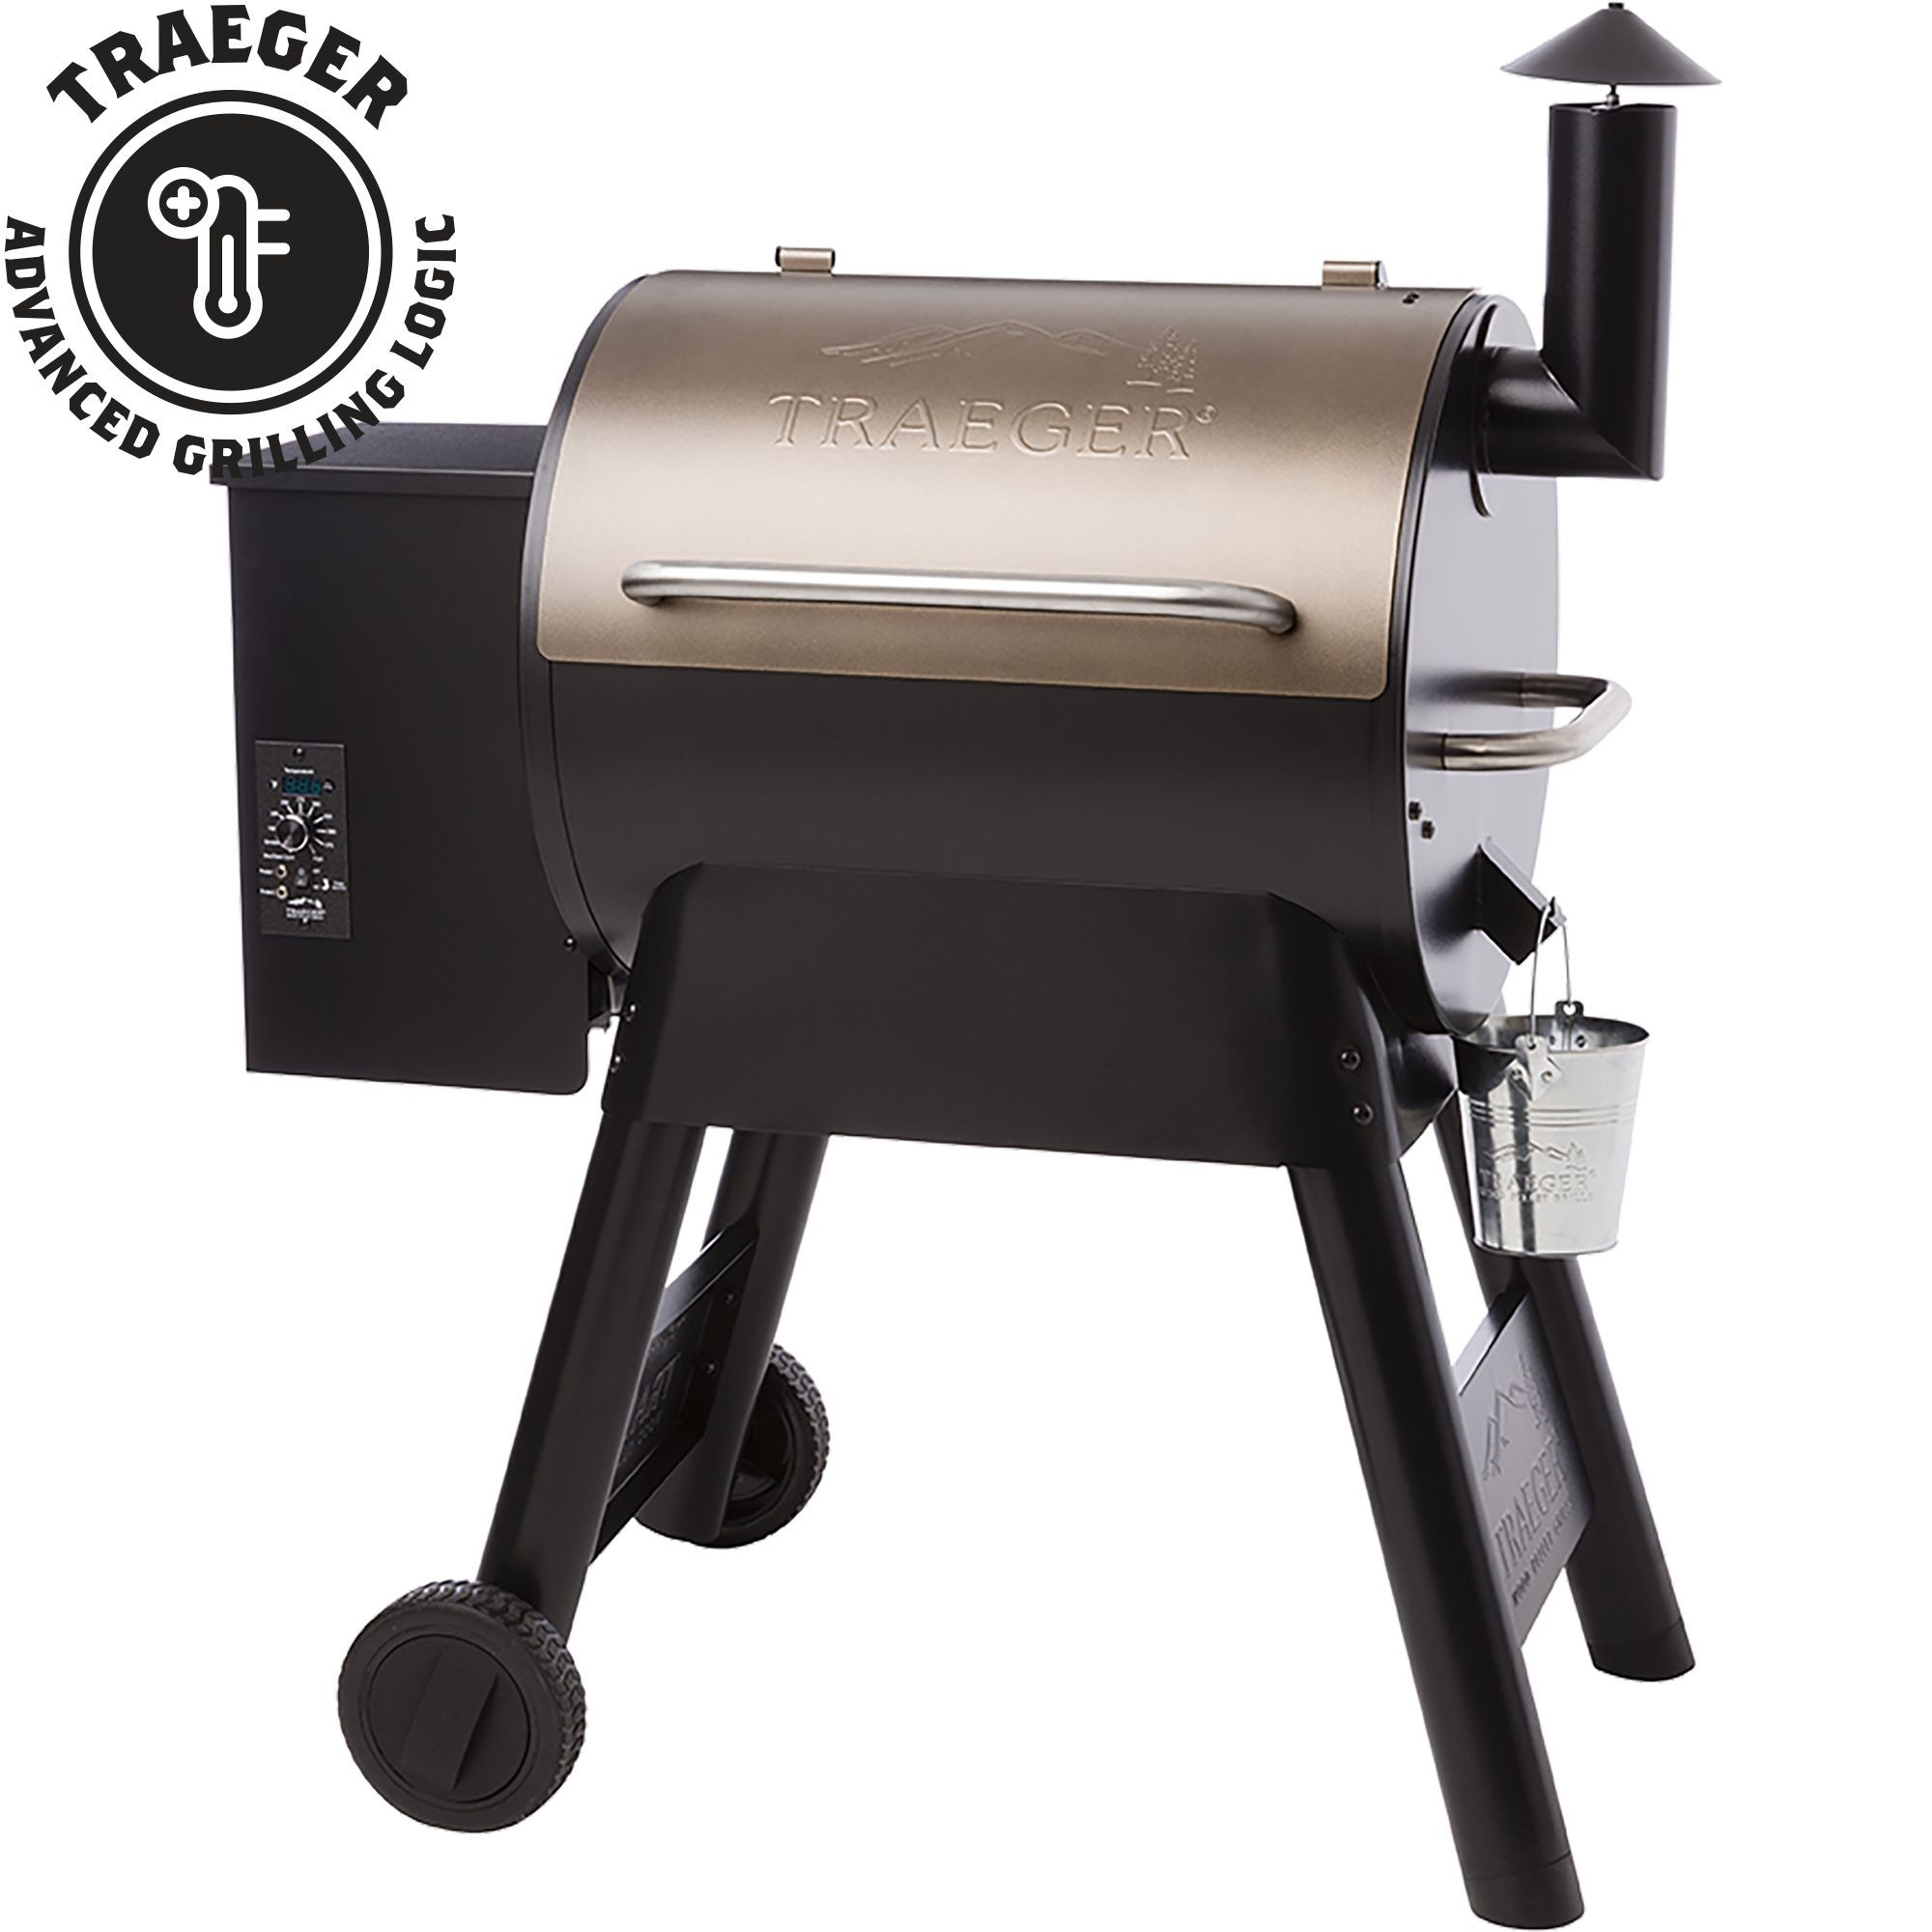 $799 NEW 2016 Traeger Pro Series 22 Grill Bronze Traeger